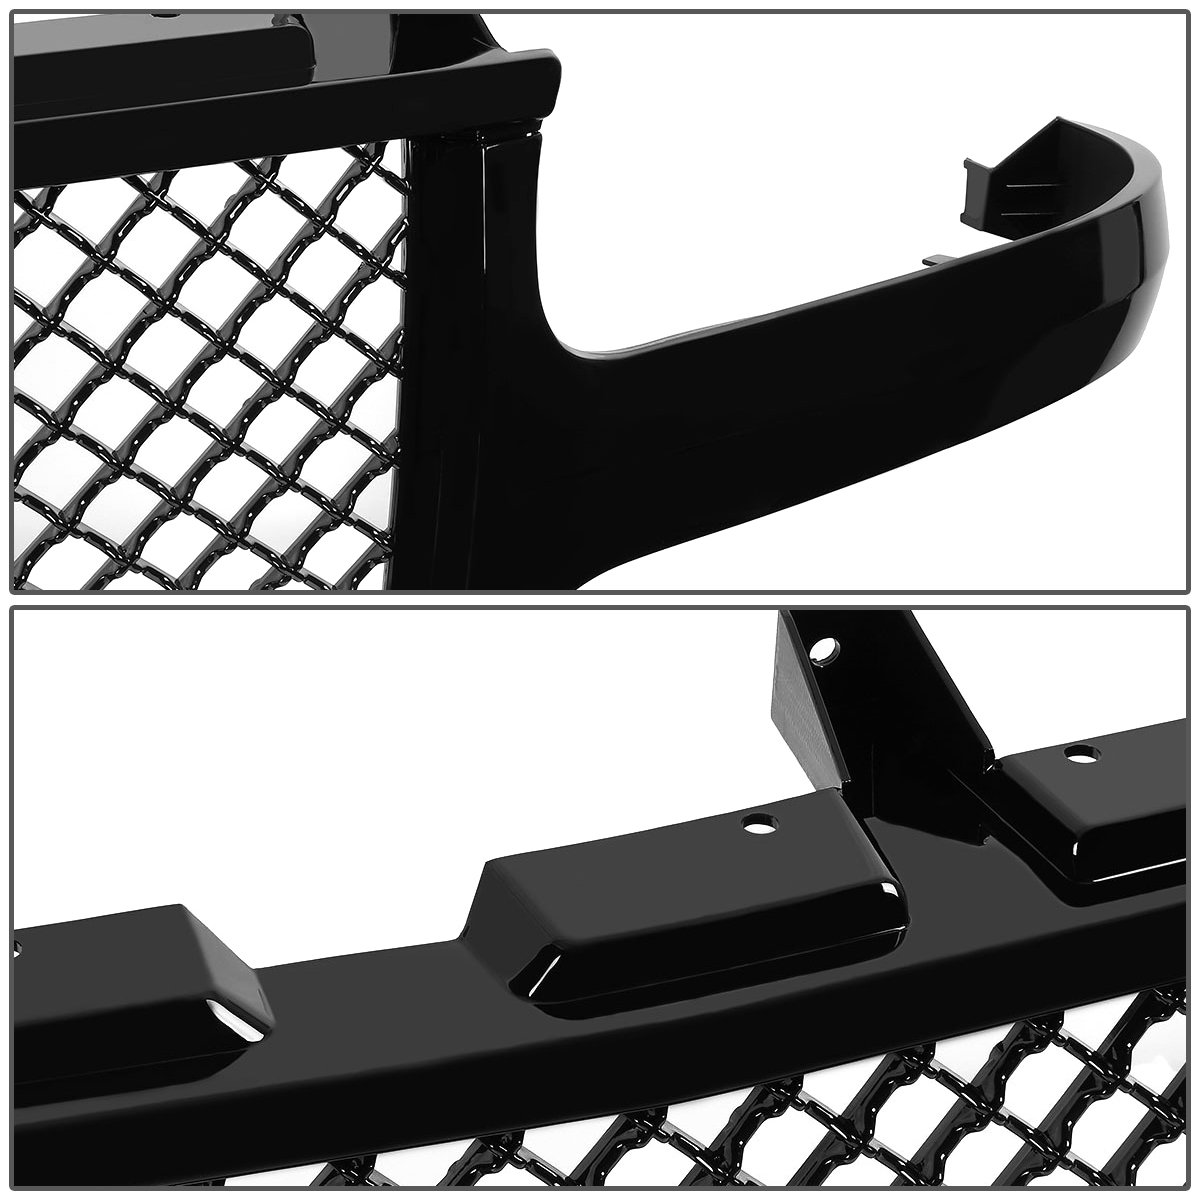 amazon for silverado tahoe suburban badgeless diamond mesh 01 Chevy Silverado 1500 amazon for silverado tahoe suburban badgeless diamond mesh front upper bumper grille guard glossy black gmt800 1500 automotive